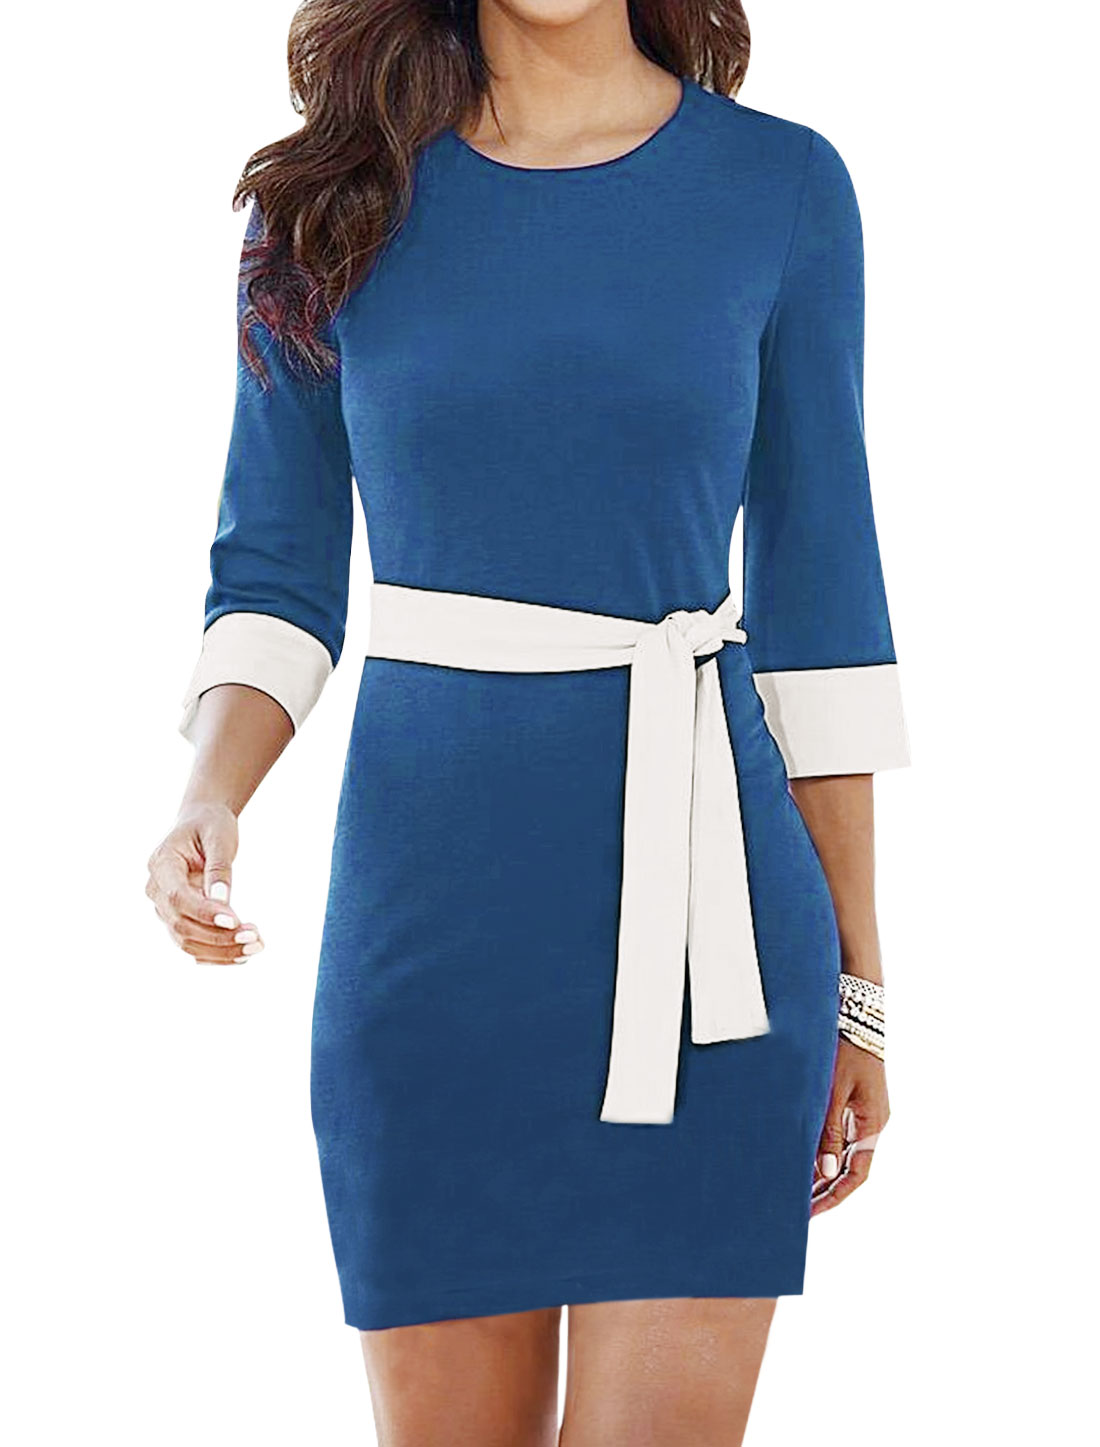 Women Round Neck 3/4 Sleeves Contrast Color Sheath Dress w Belt Blue M